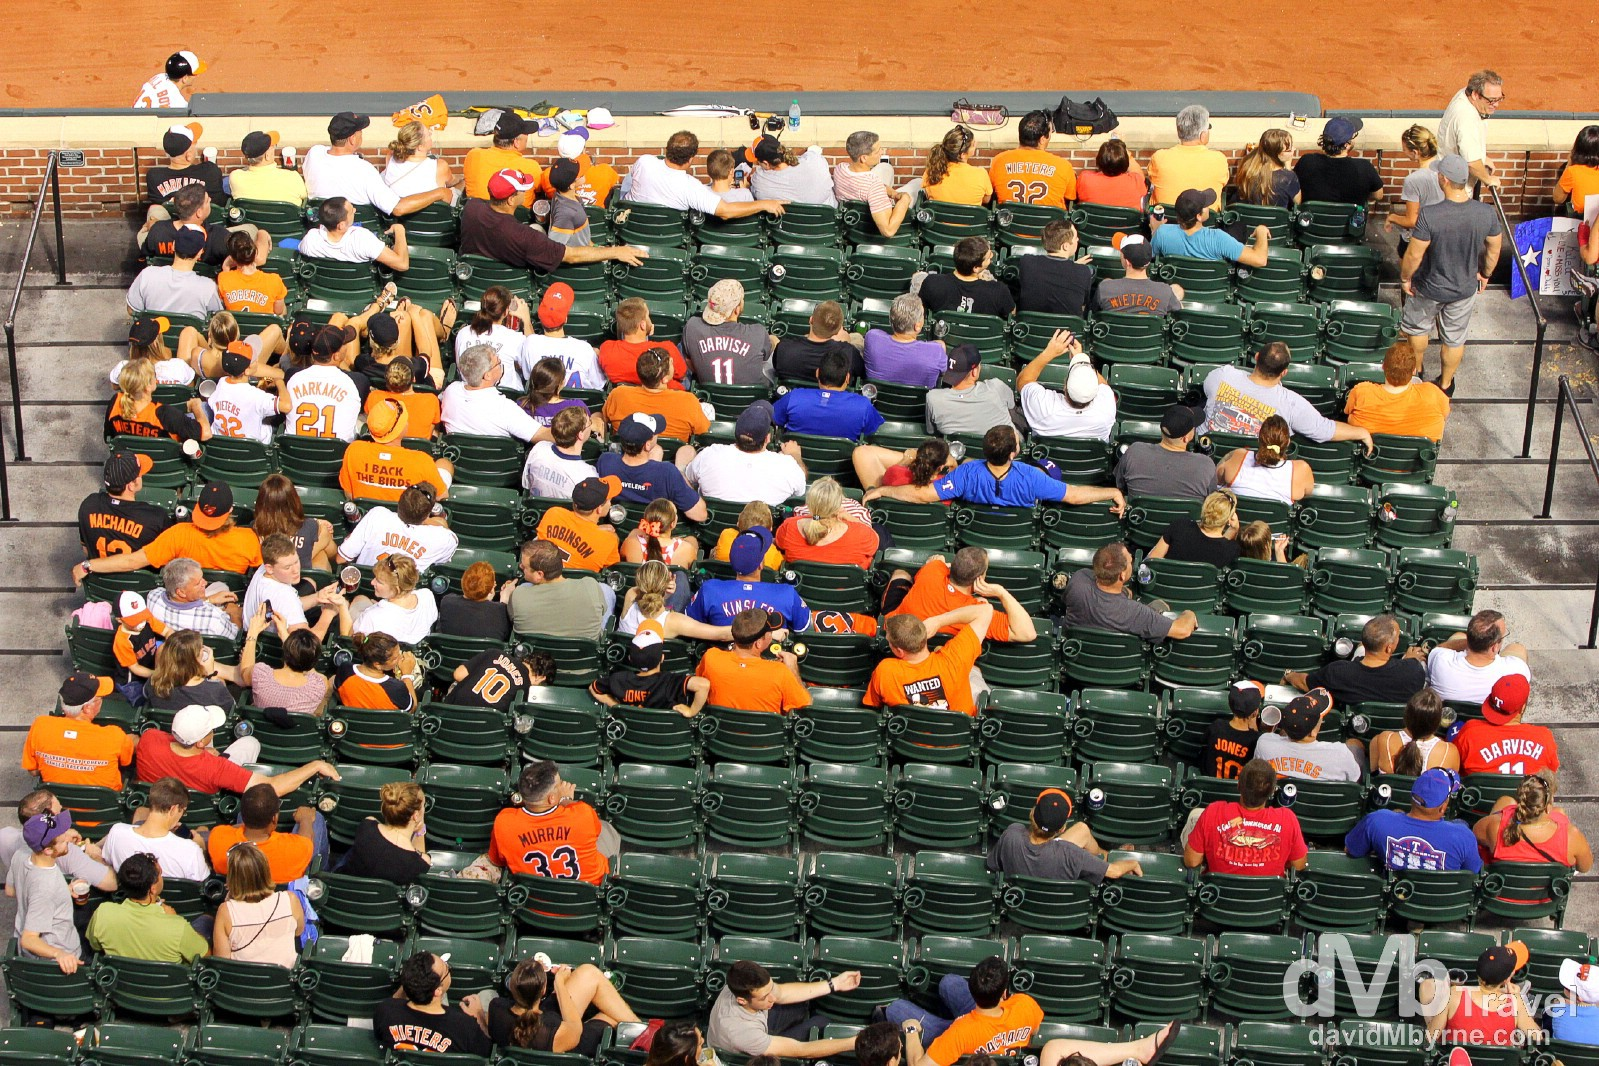 Oriole fans at Oriole Park at Camden Yards, Baltimore, Maryland, USA. July 10th 2013.